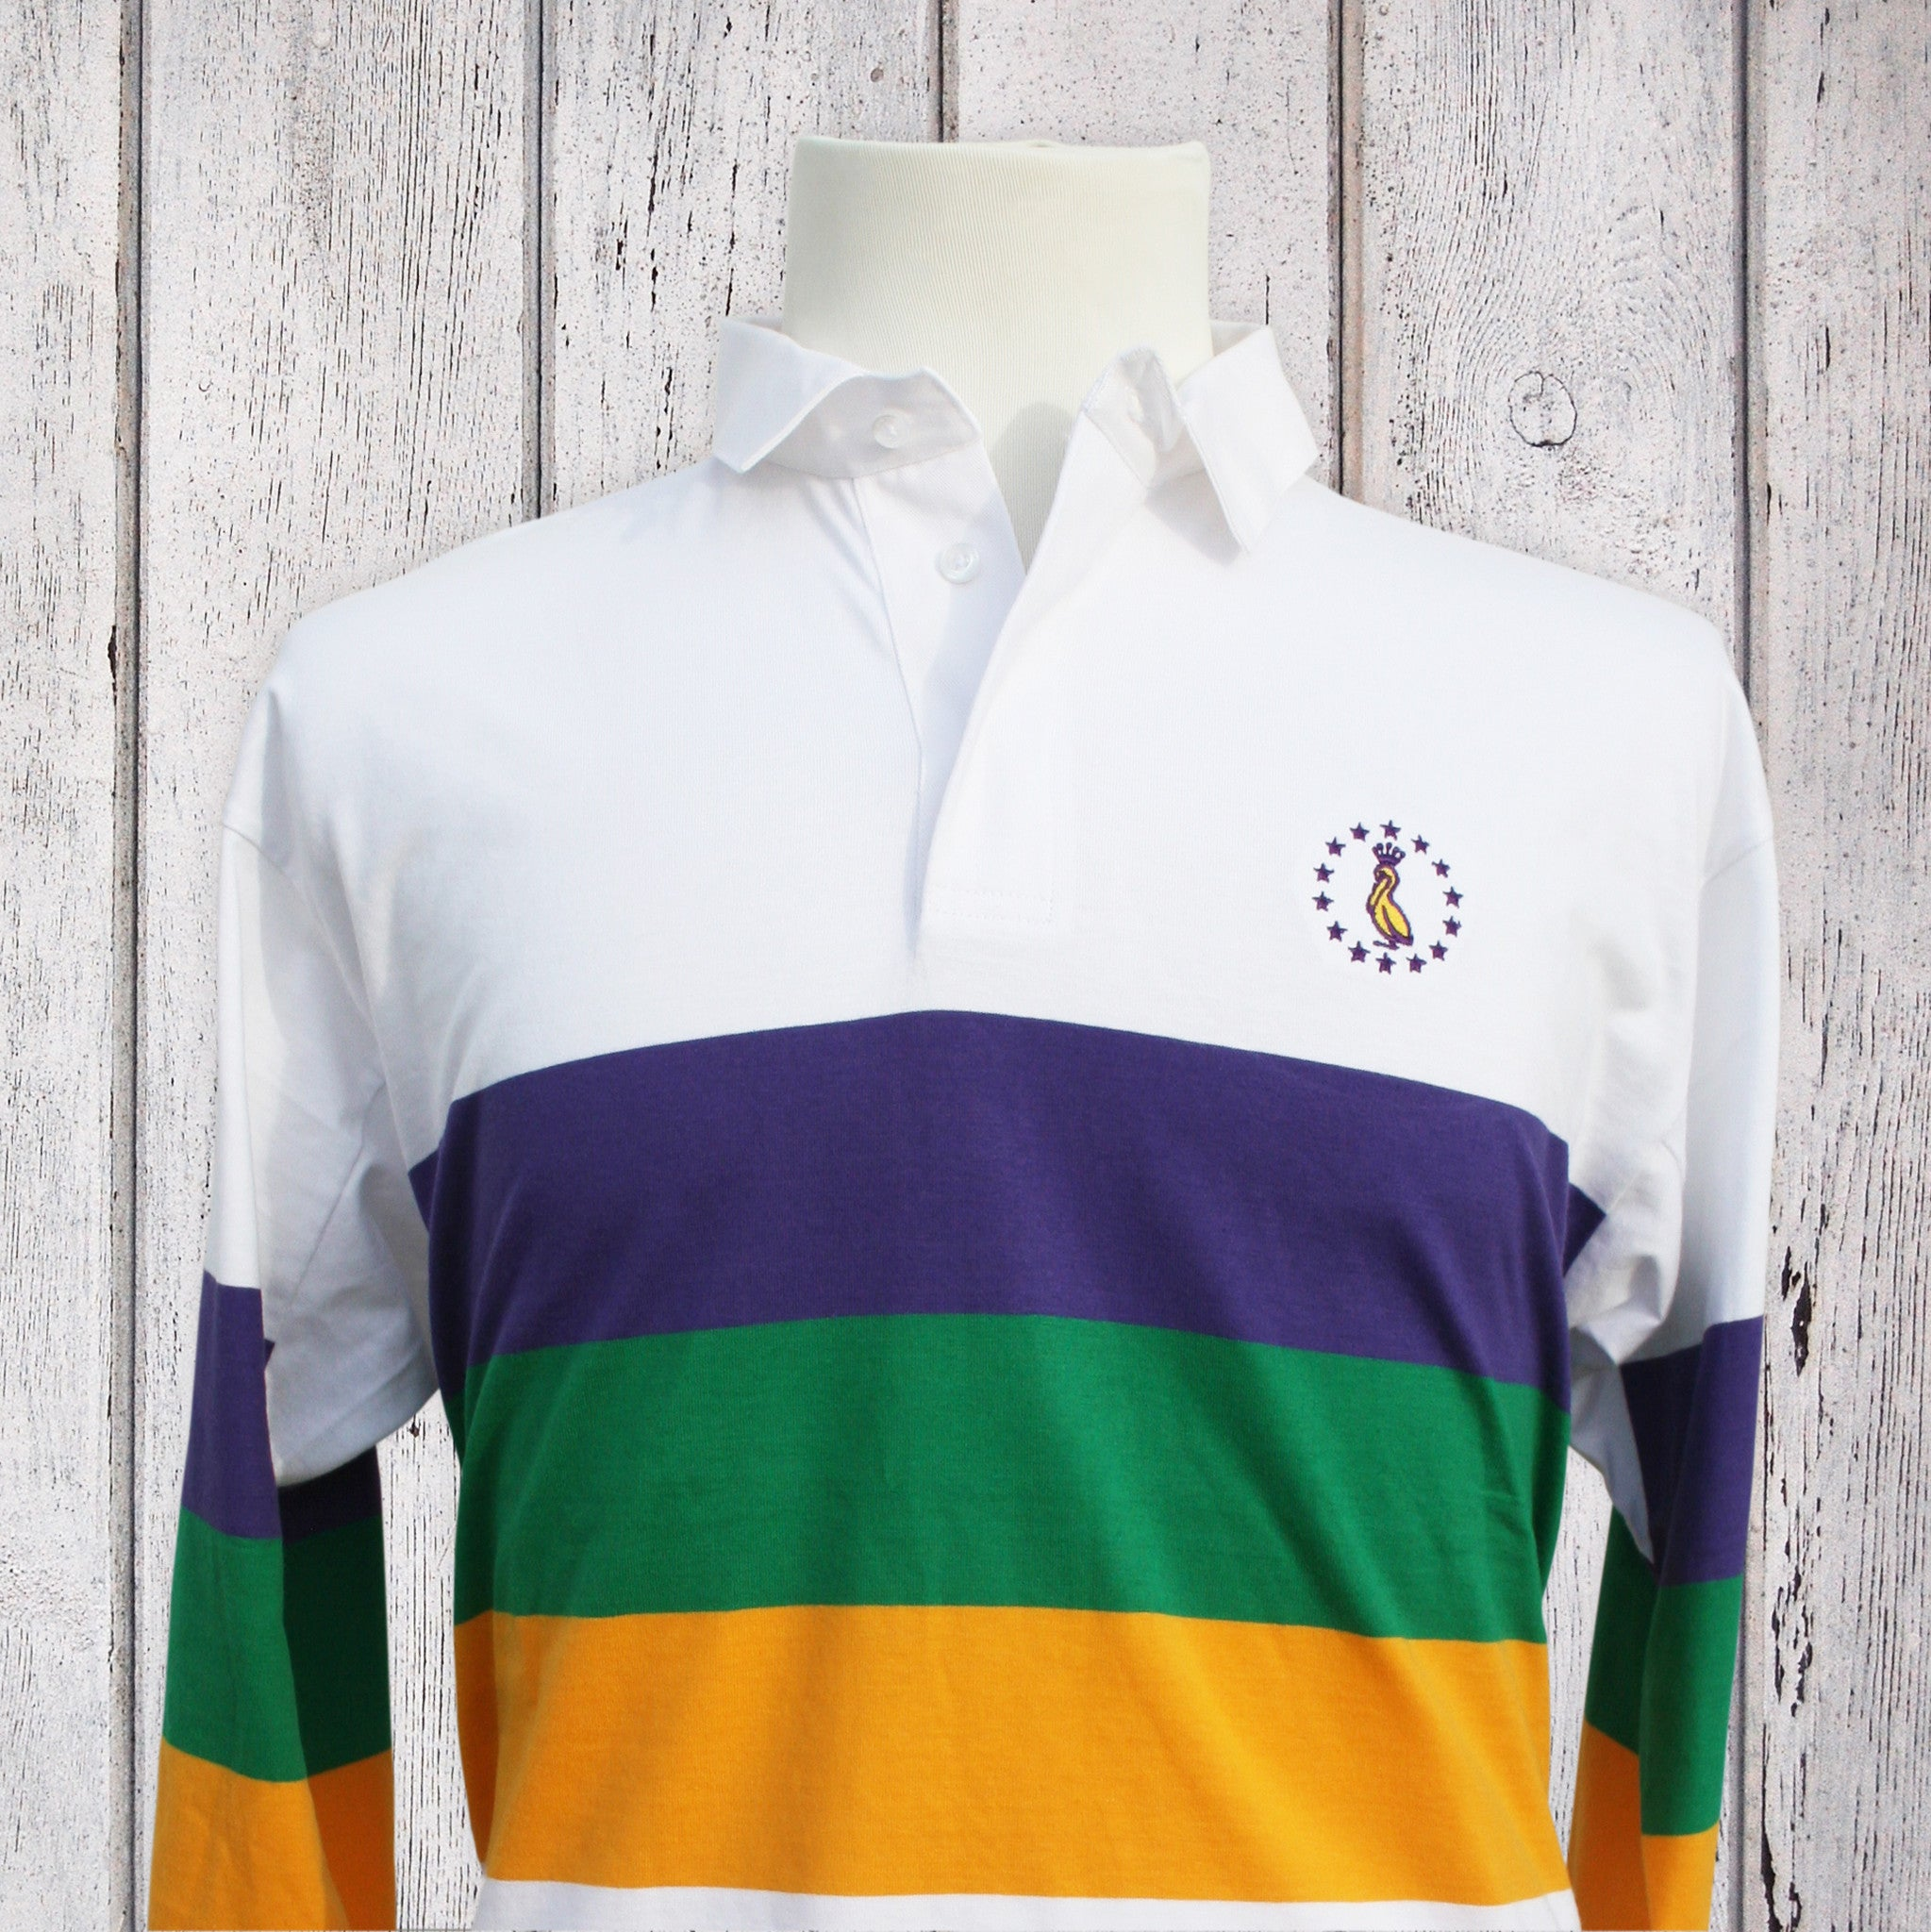 96a1ac29413 Mardi Gras Rugby Shirt - White With MG Stripes - Pelican Coast Clothing